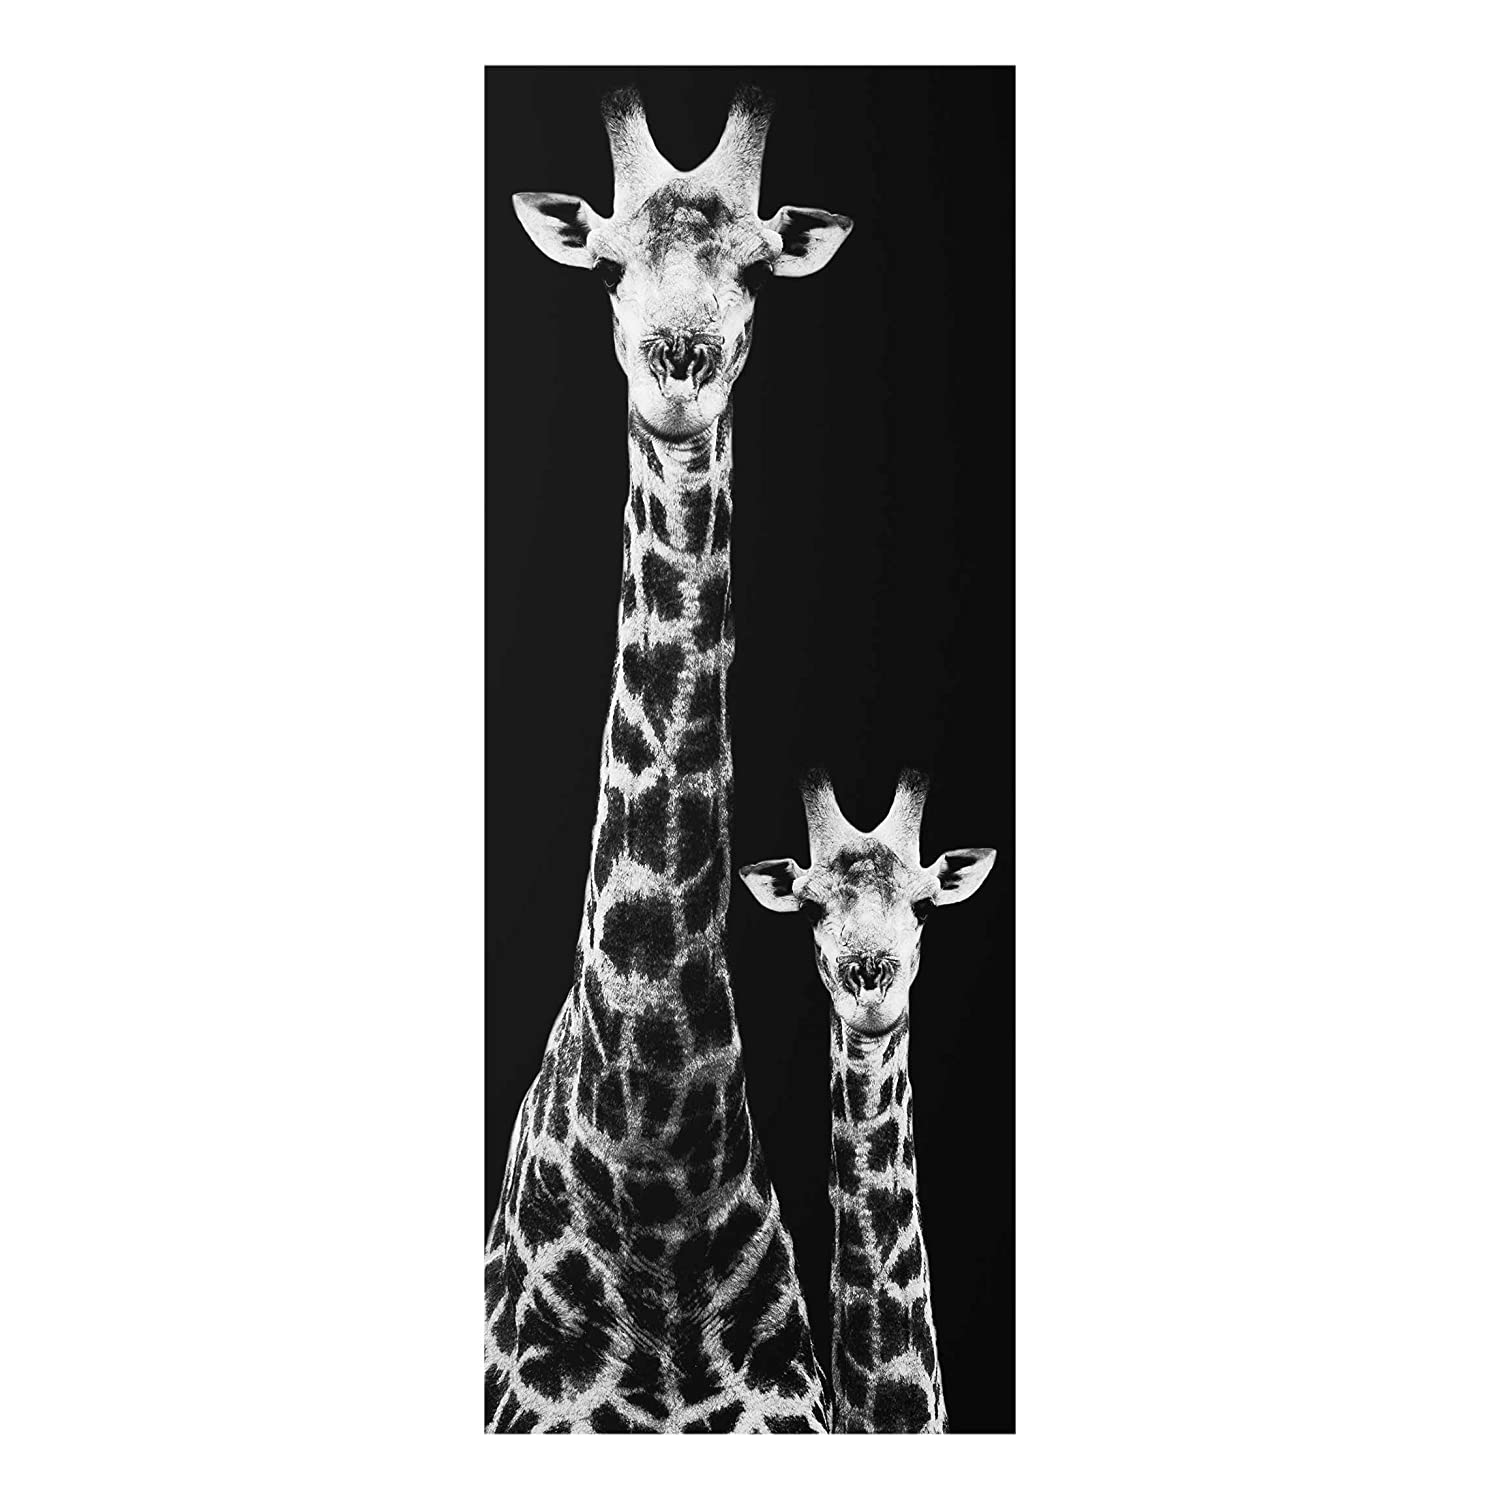 Print on Glass - Giraffe Duo black-white - Panel | print on glass glass print glass picture wall mural glass image wall art glass wall picture glass printing wall picture, Dimension HxW: 80cm x 30cm PPS. Imaging GmbH